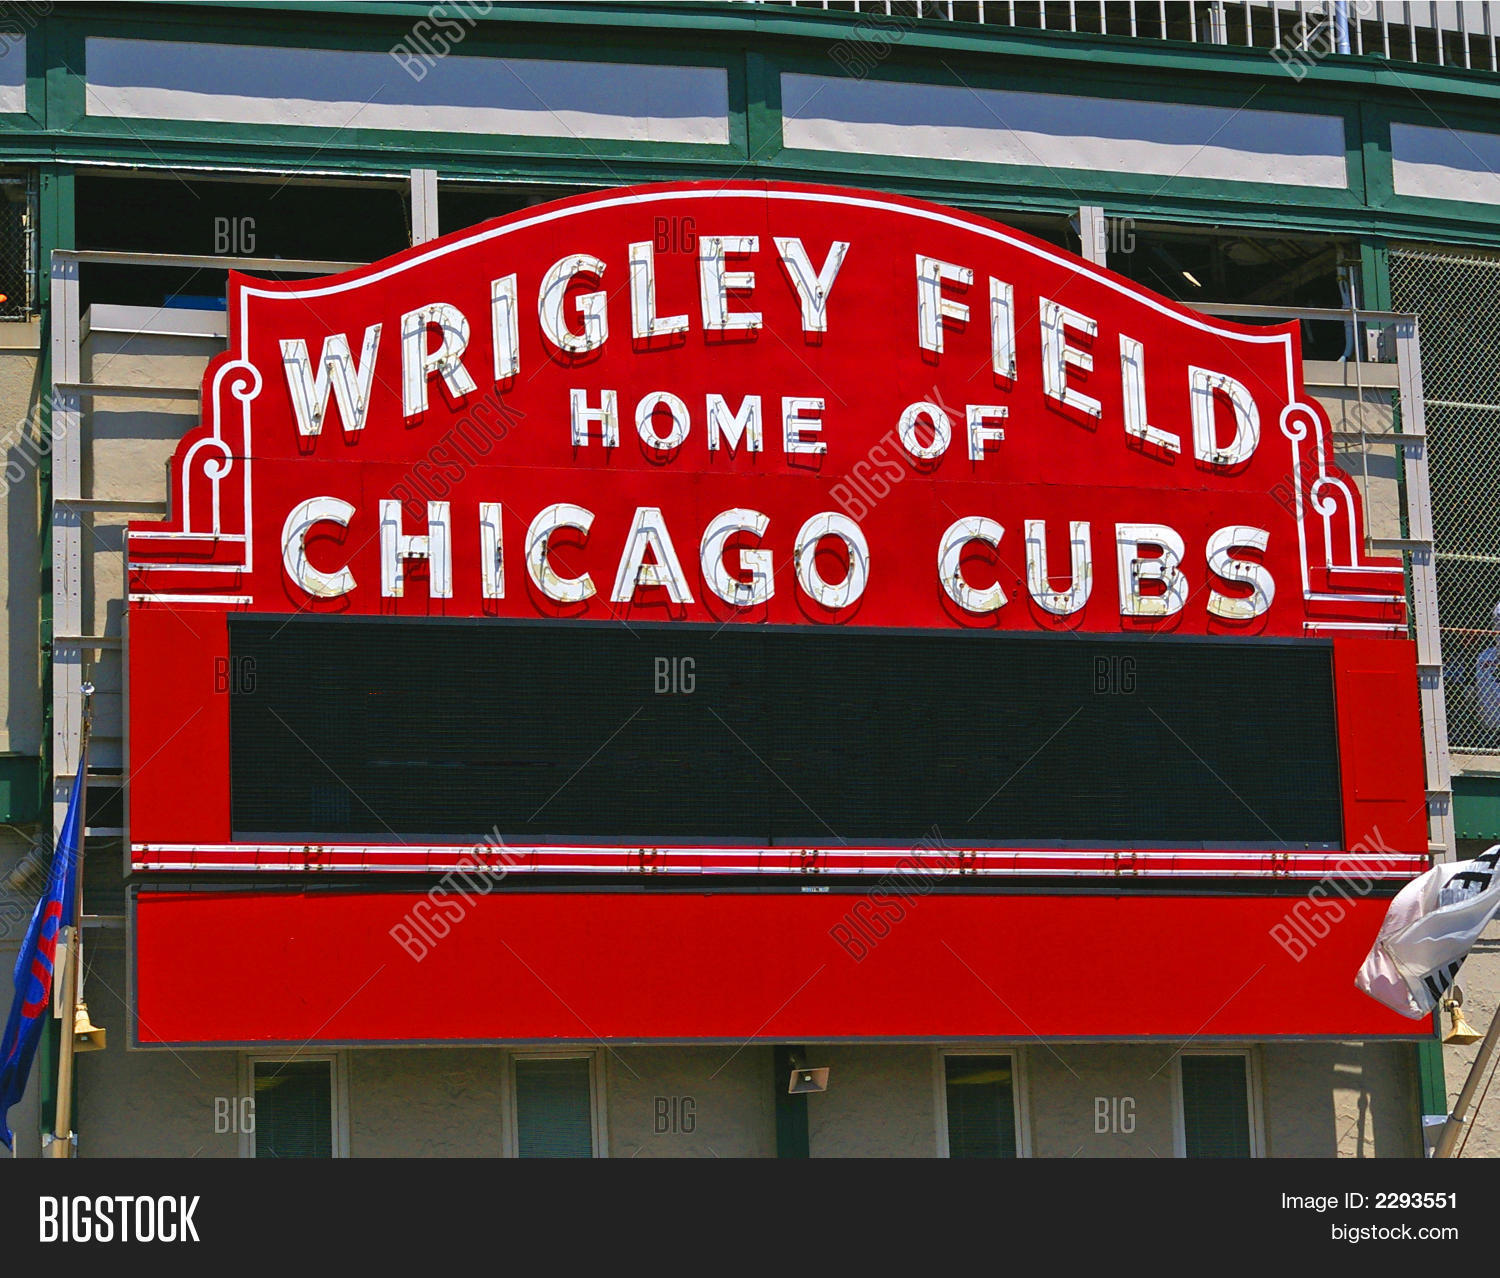 Wrigley Field Large Pictures 77